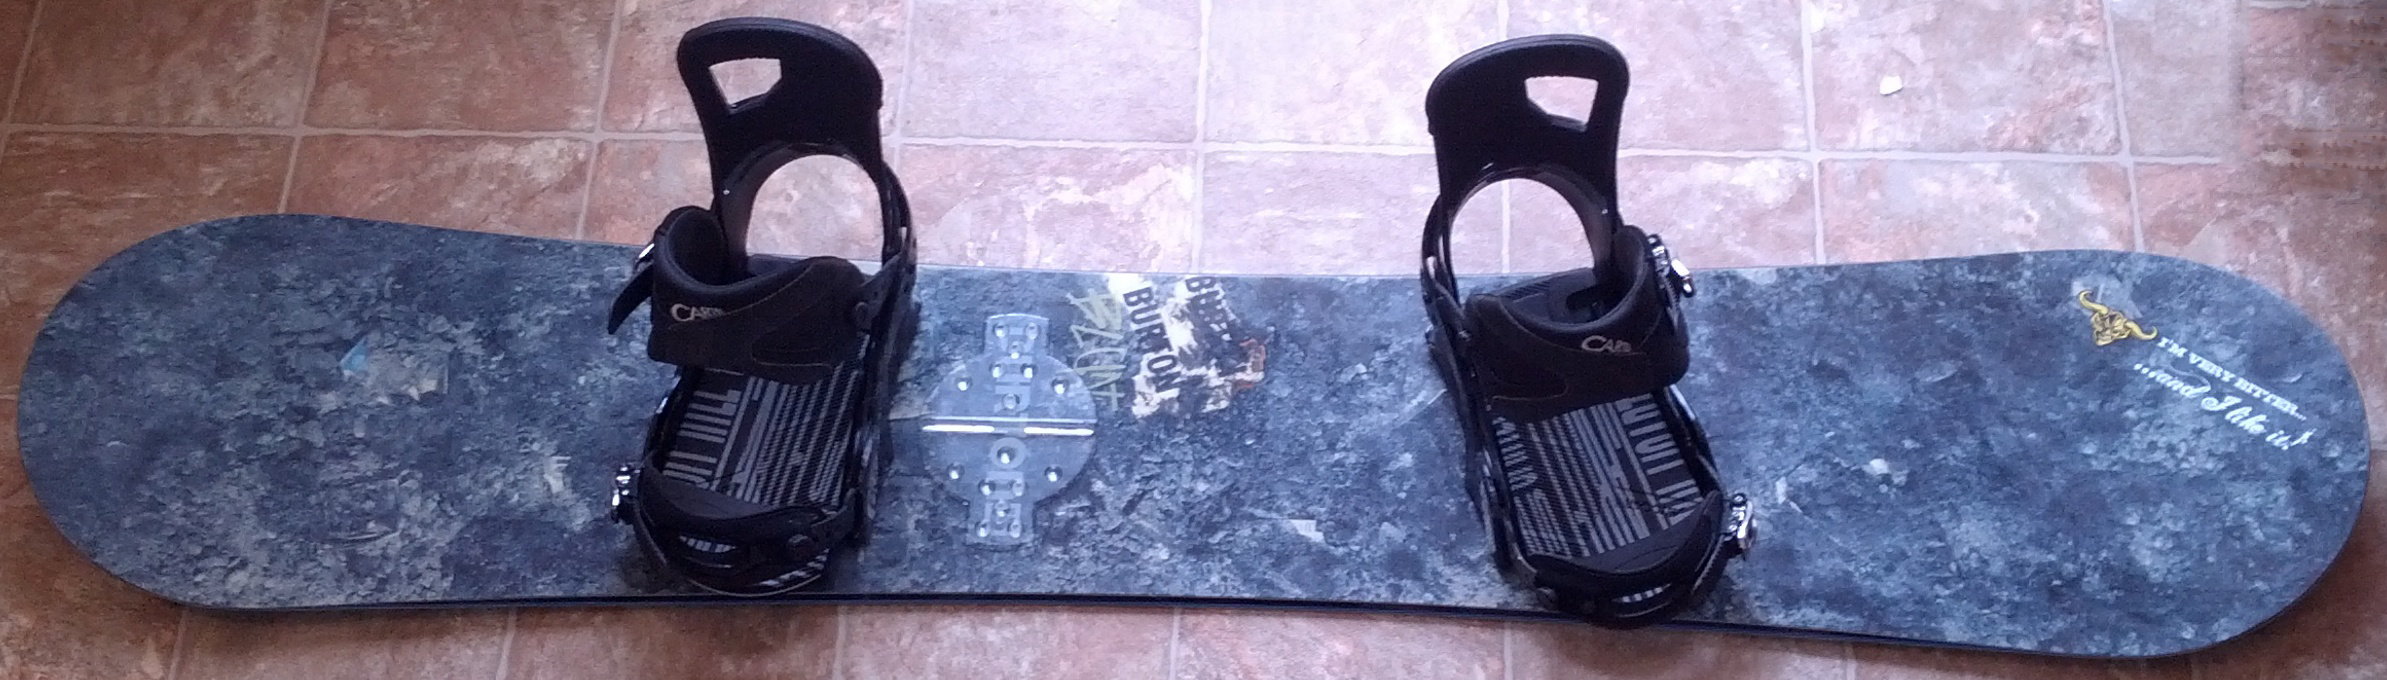 File:Snowboard with Strap-In Bindings and Stomp Pad.png ...